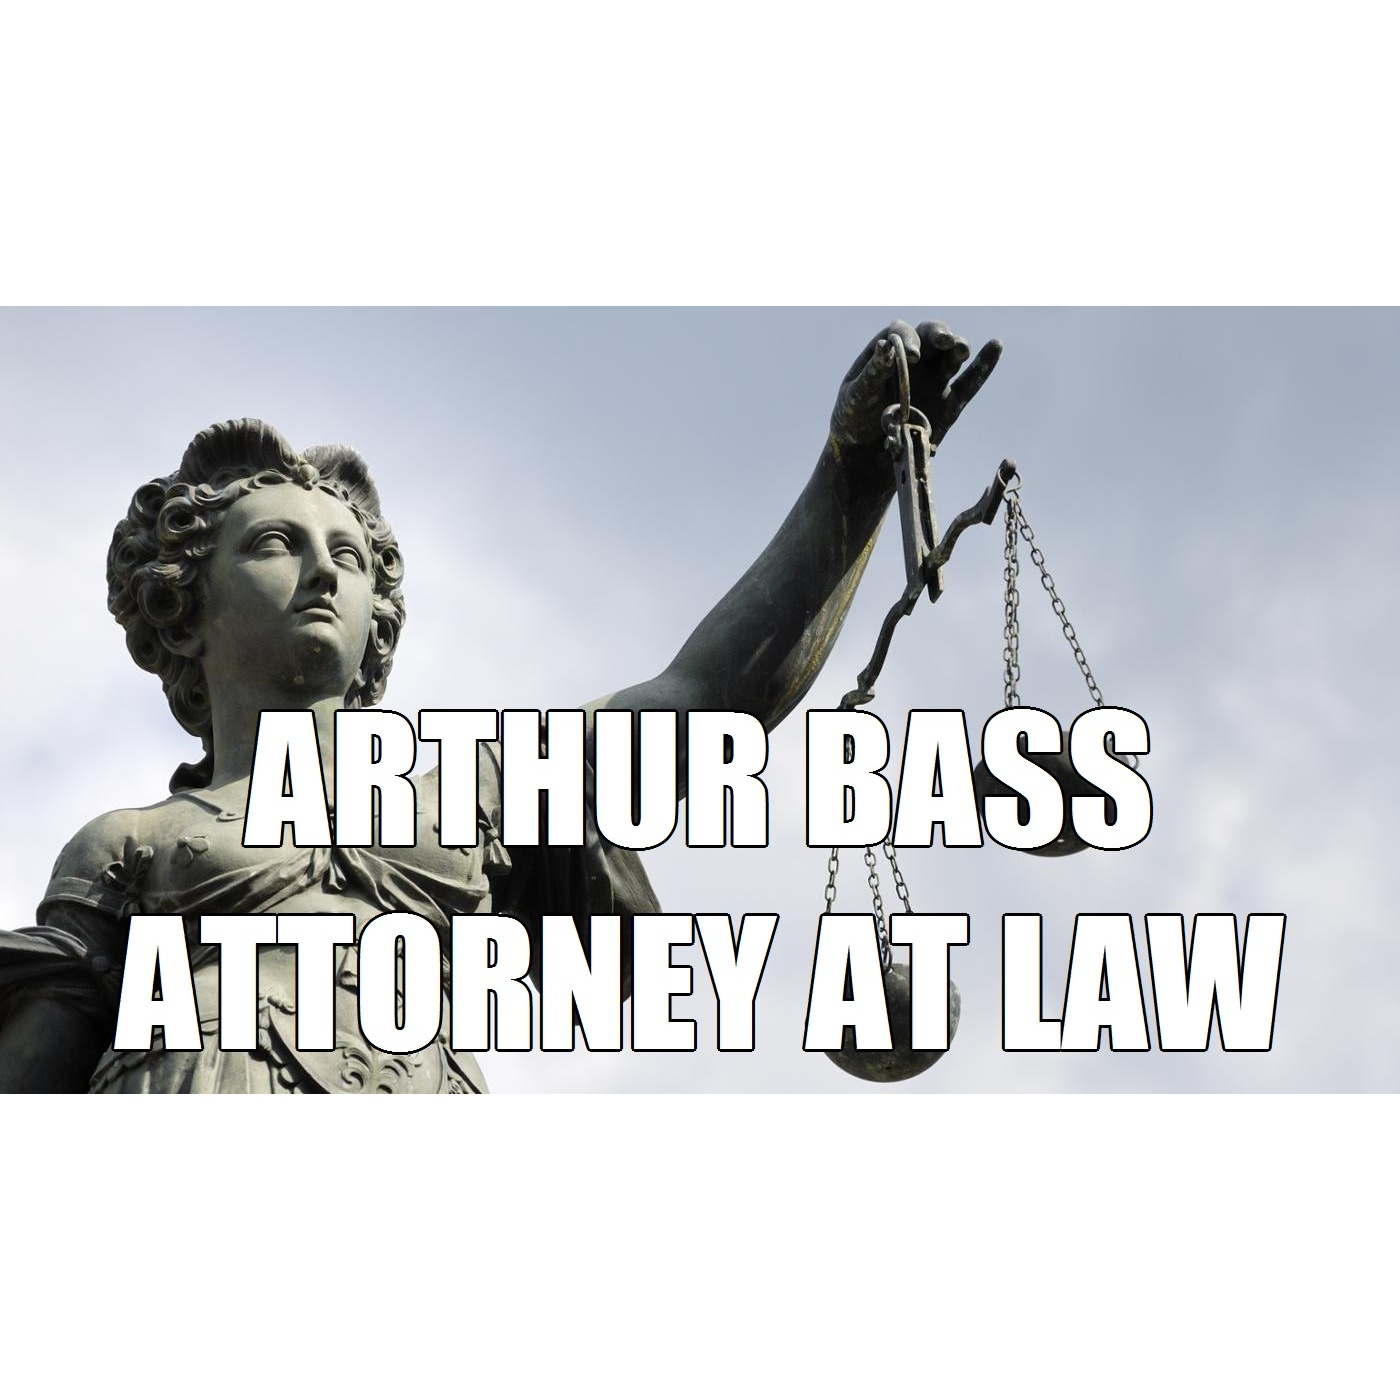 ARTHUR BASS, Attorney at Law